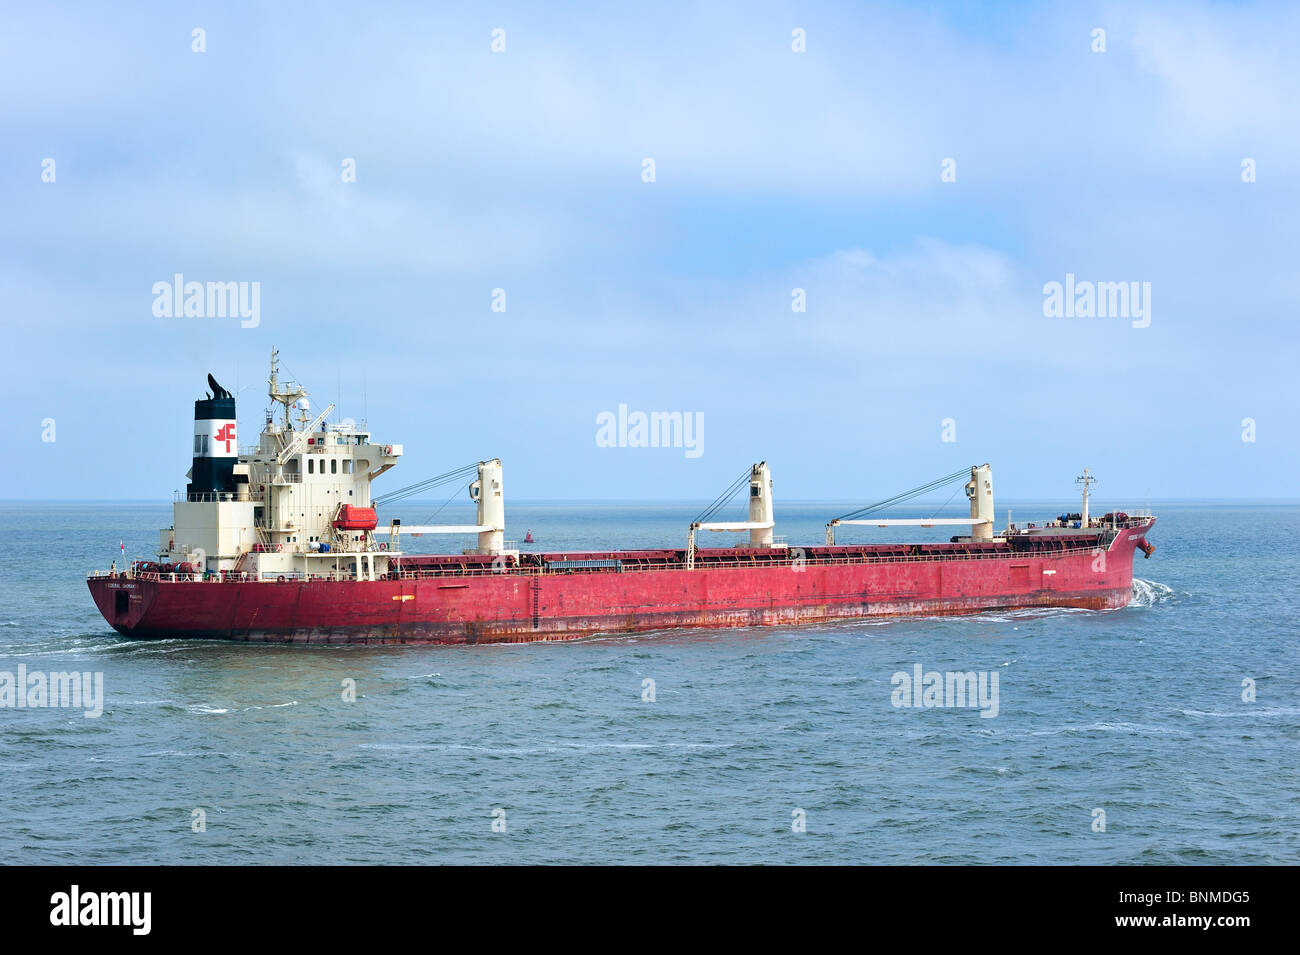 Red cargo ship / bulk carrier / freighter at the North Sea, Europe - Stock Image